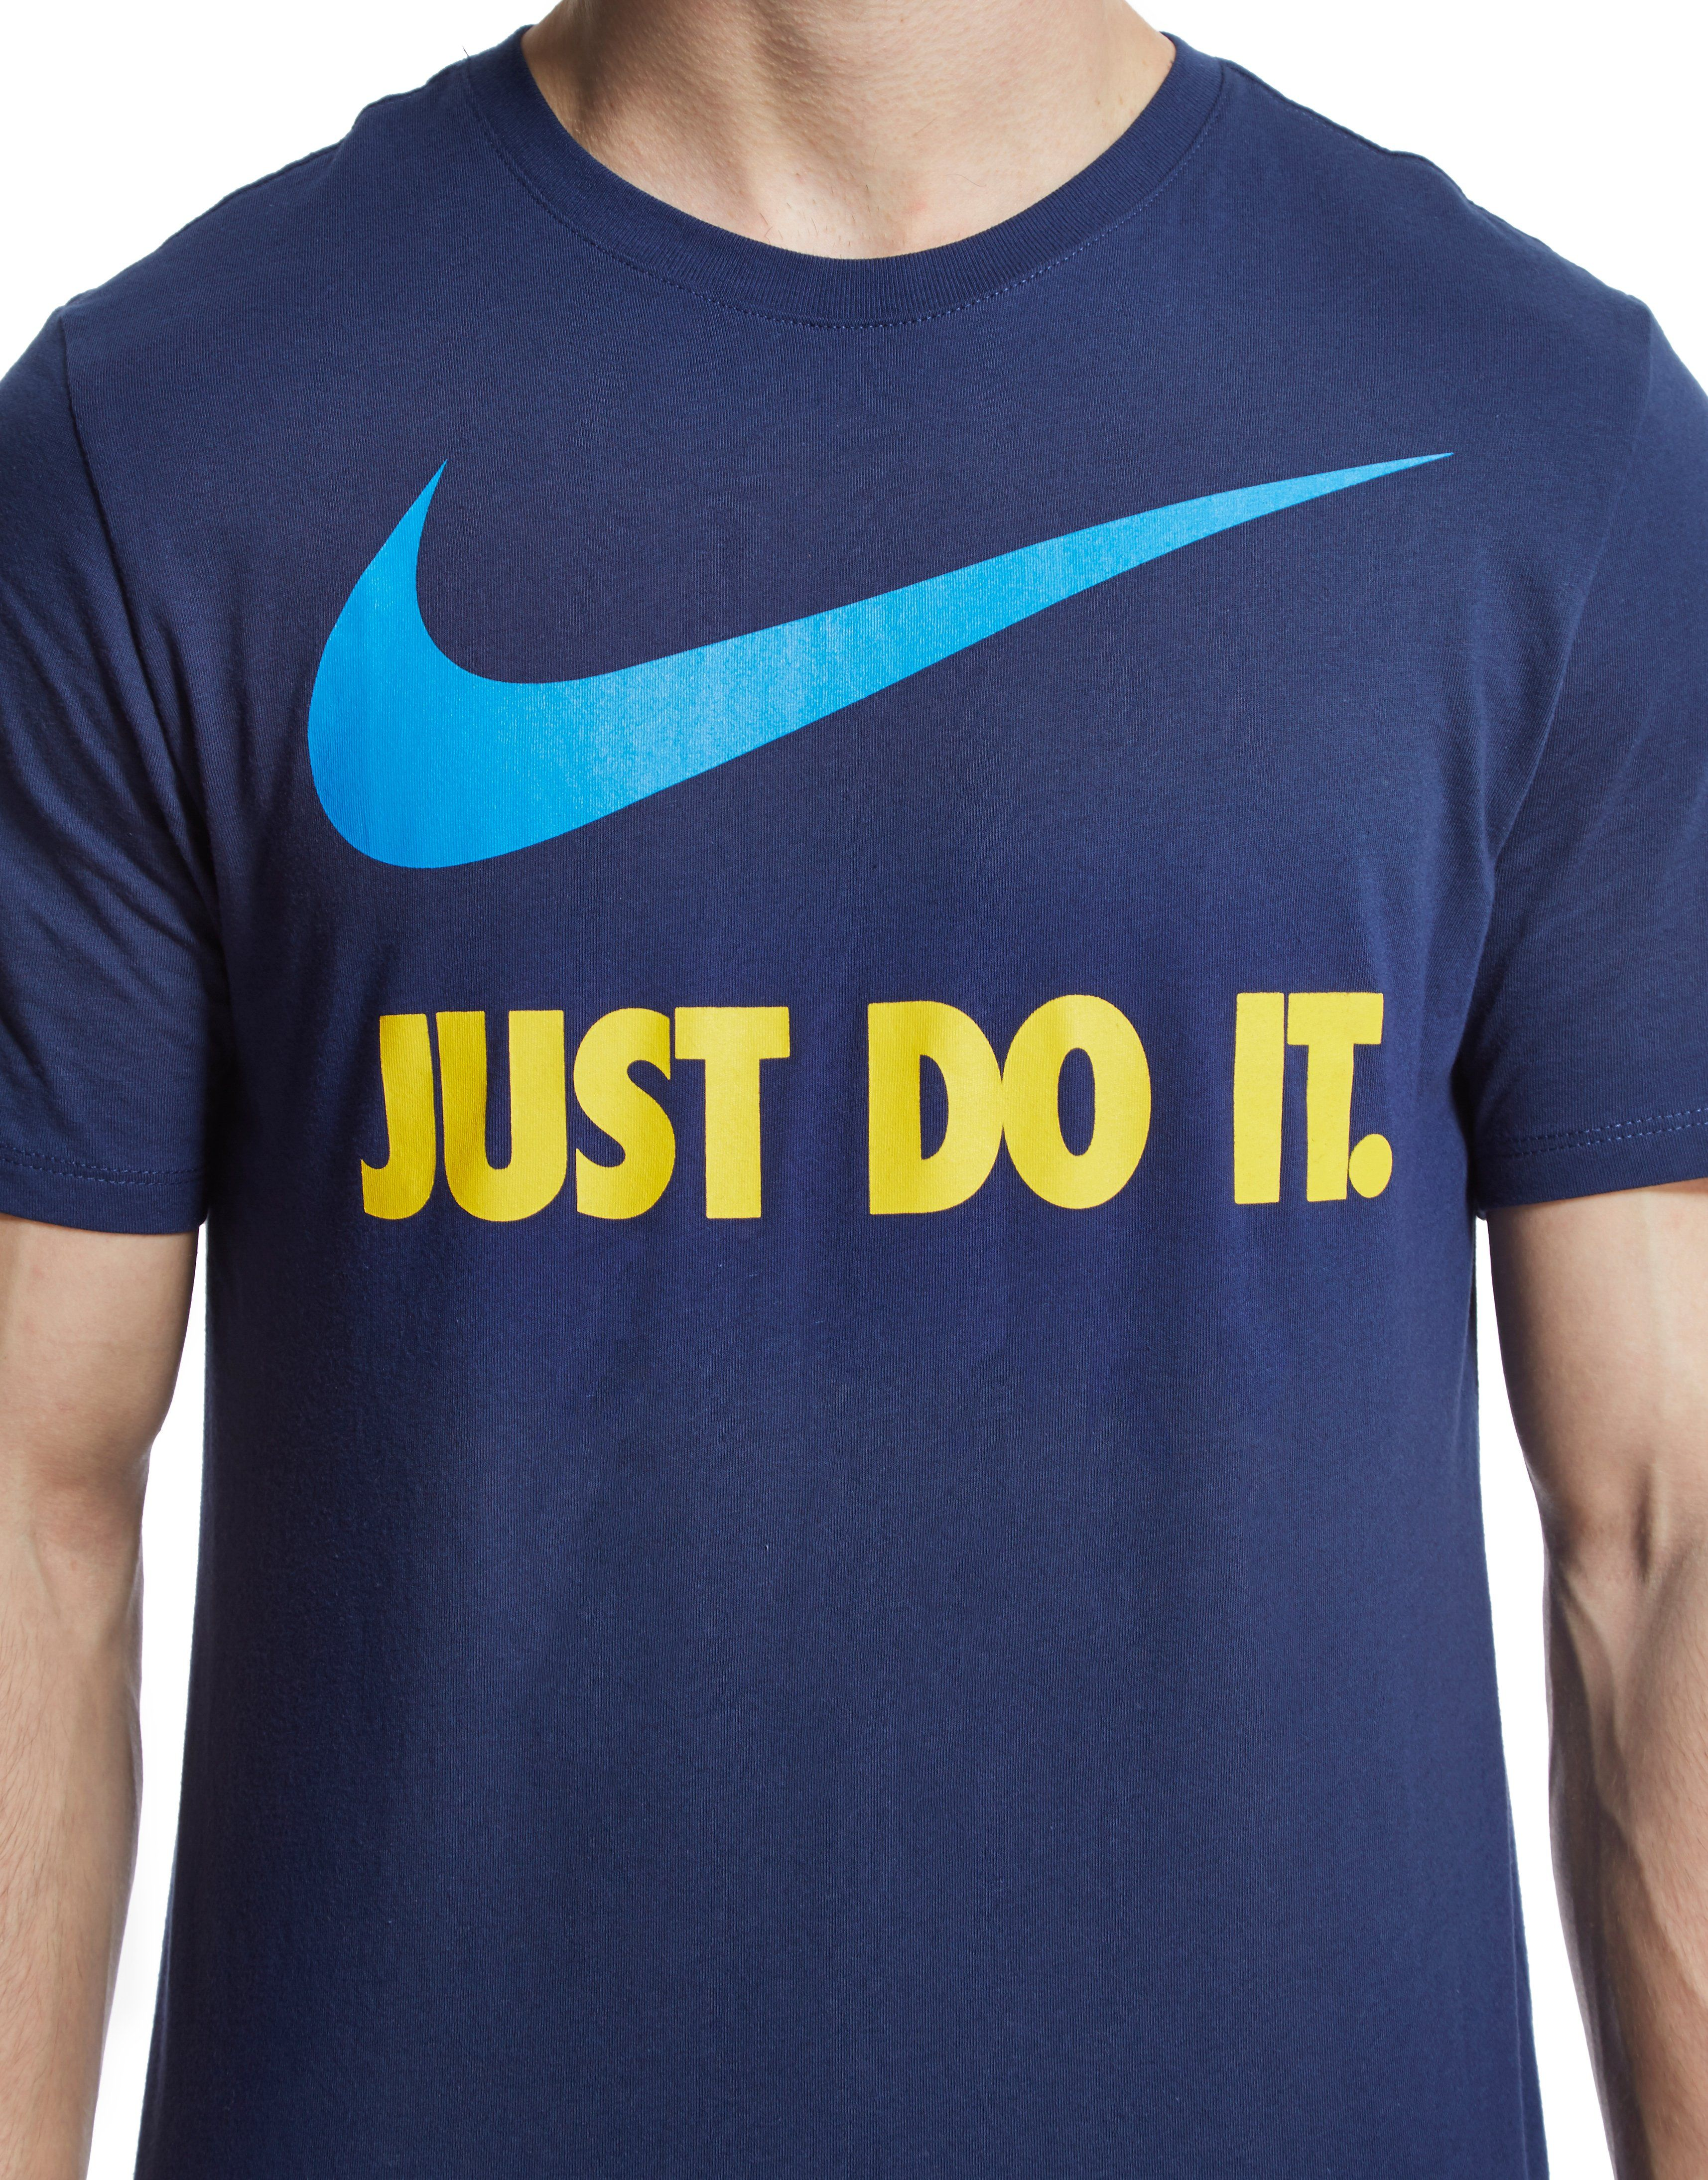 Nike T Shirts Just Do It nike just do it tee sh...